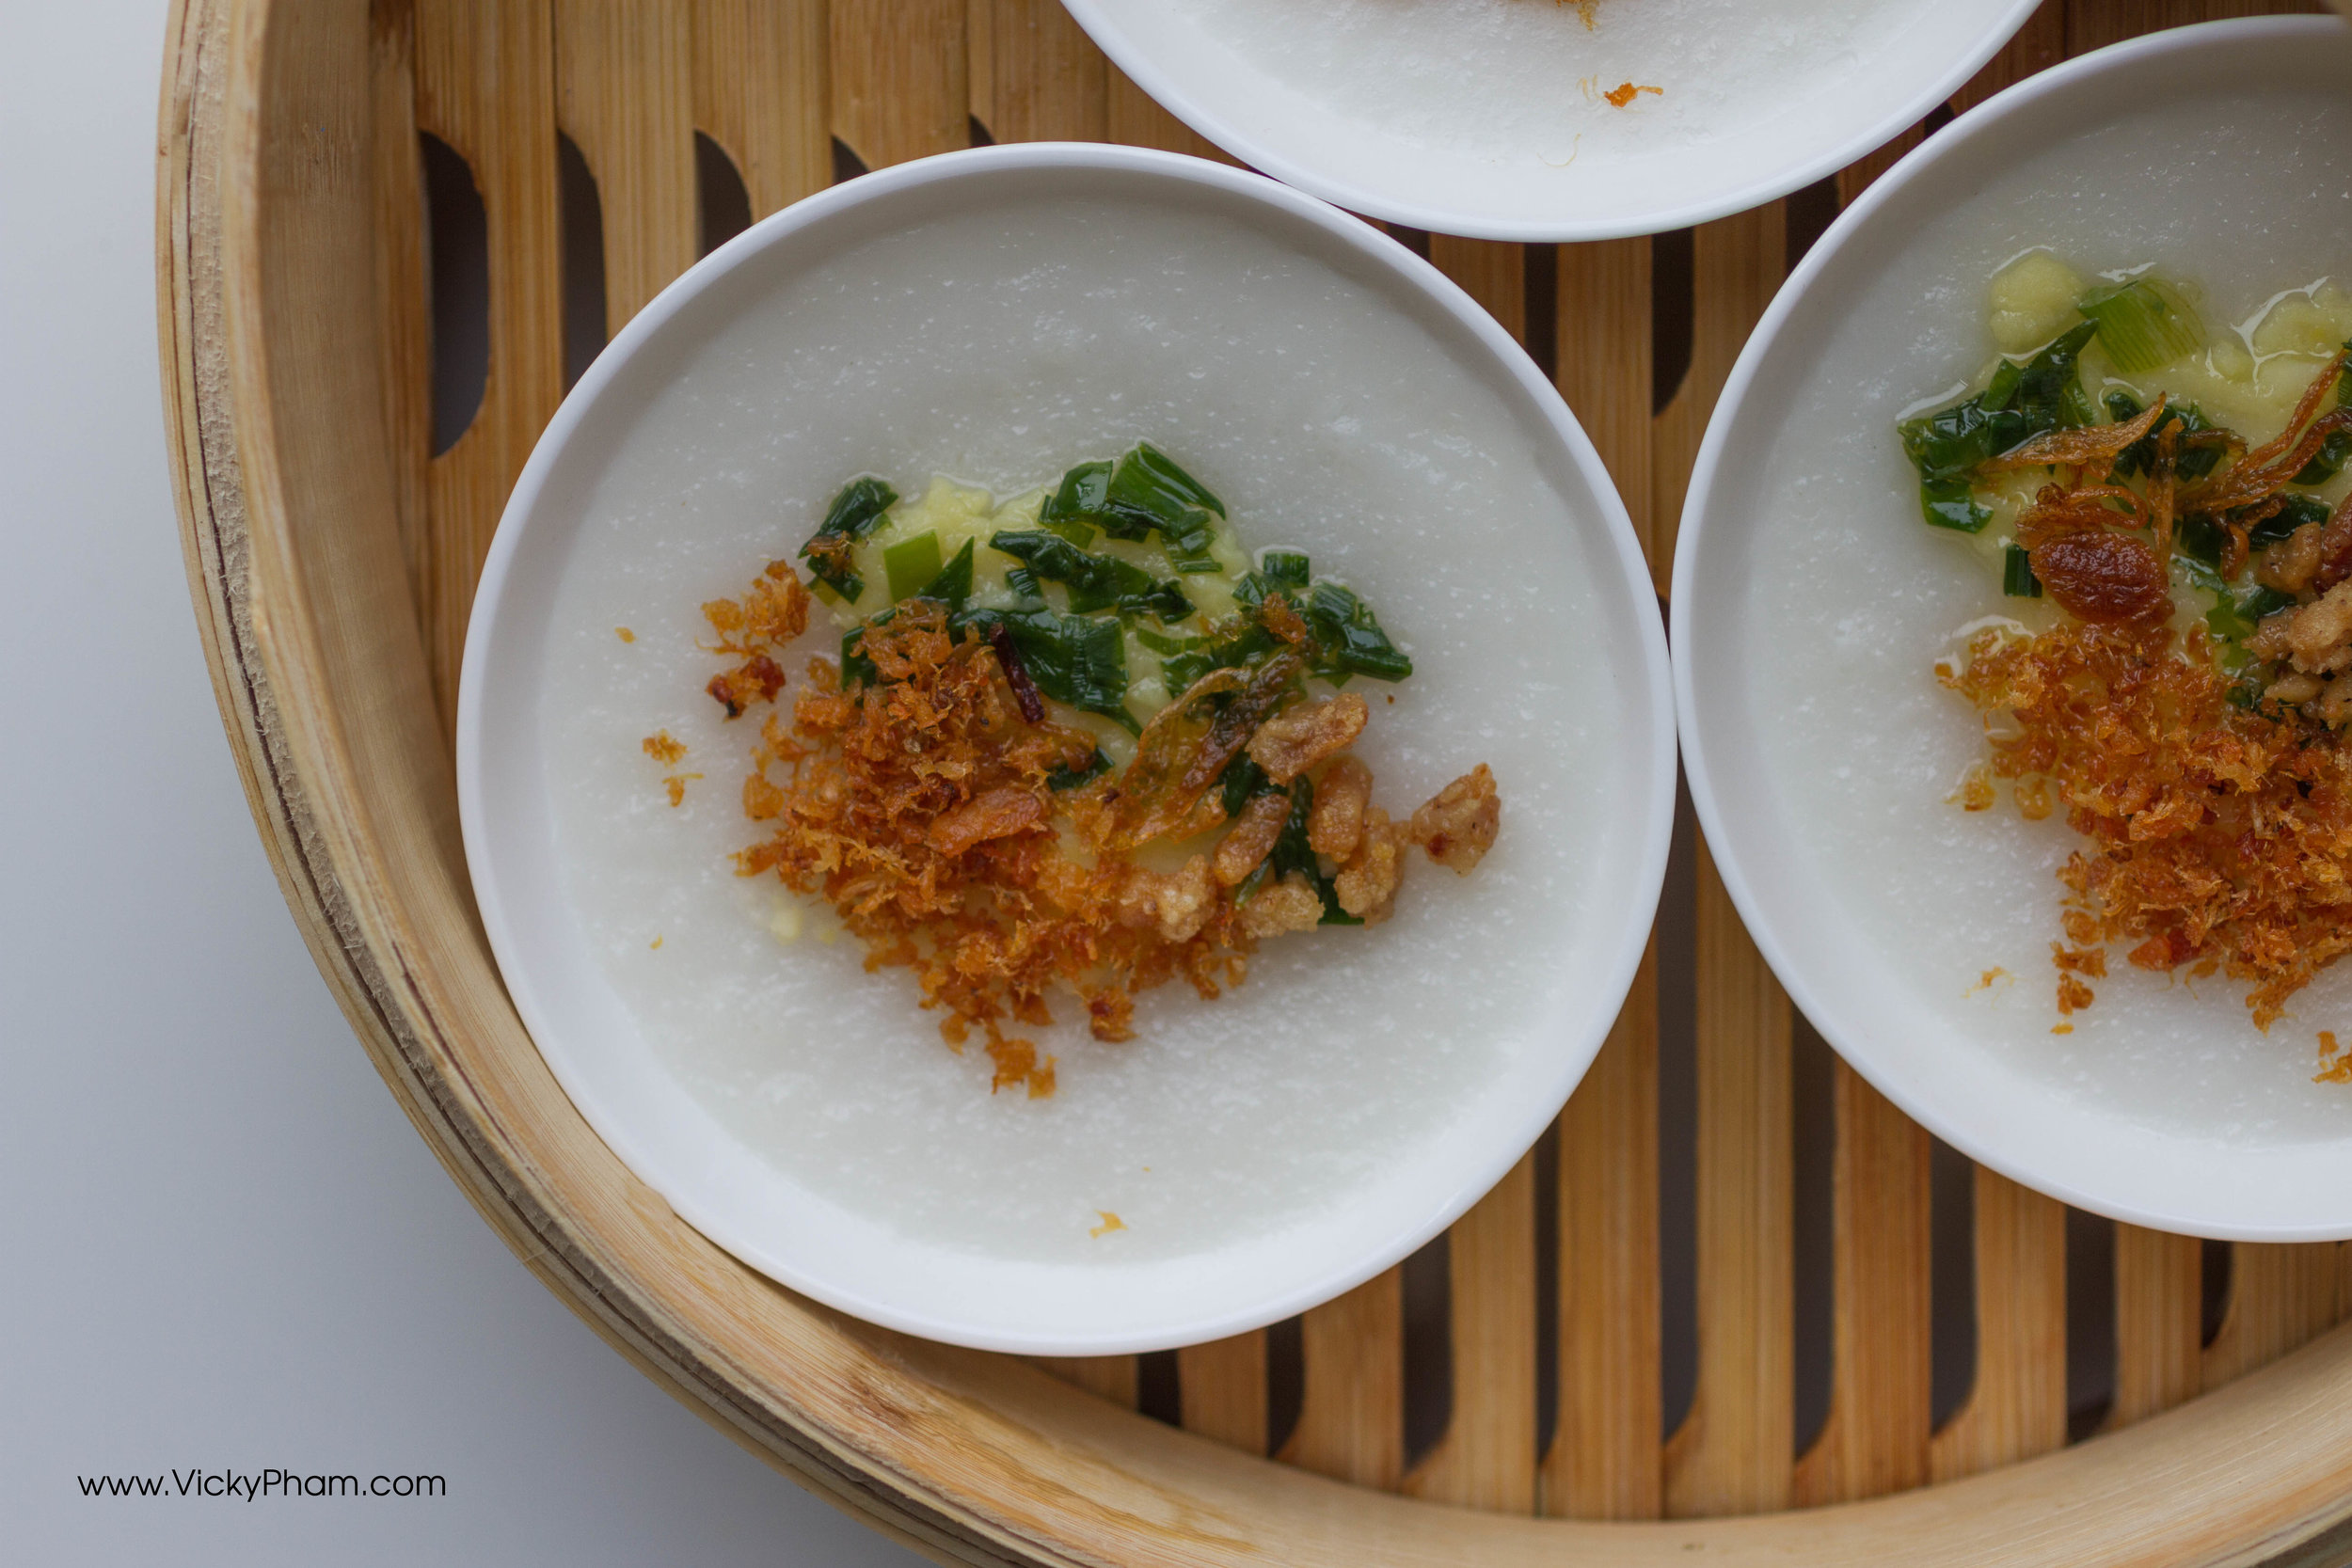 Banh Beo, Vietnamese steamed and savory rice cakes